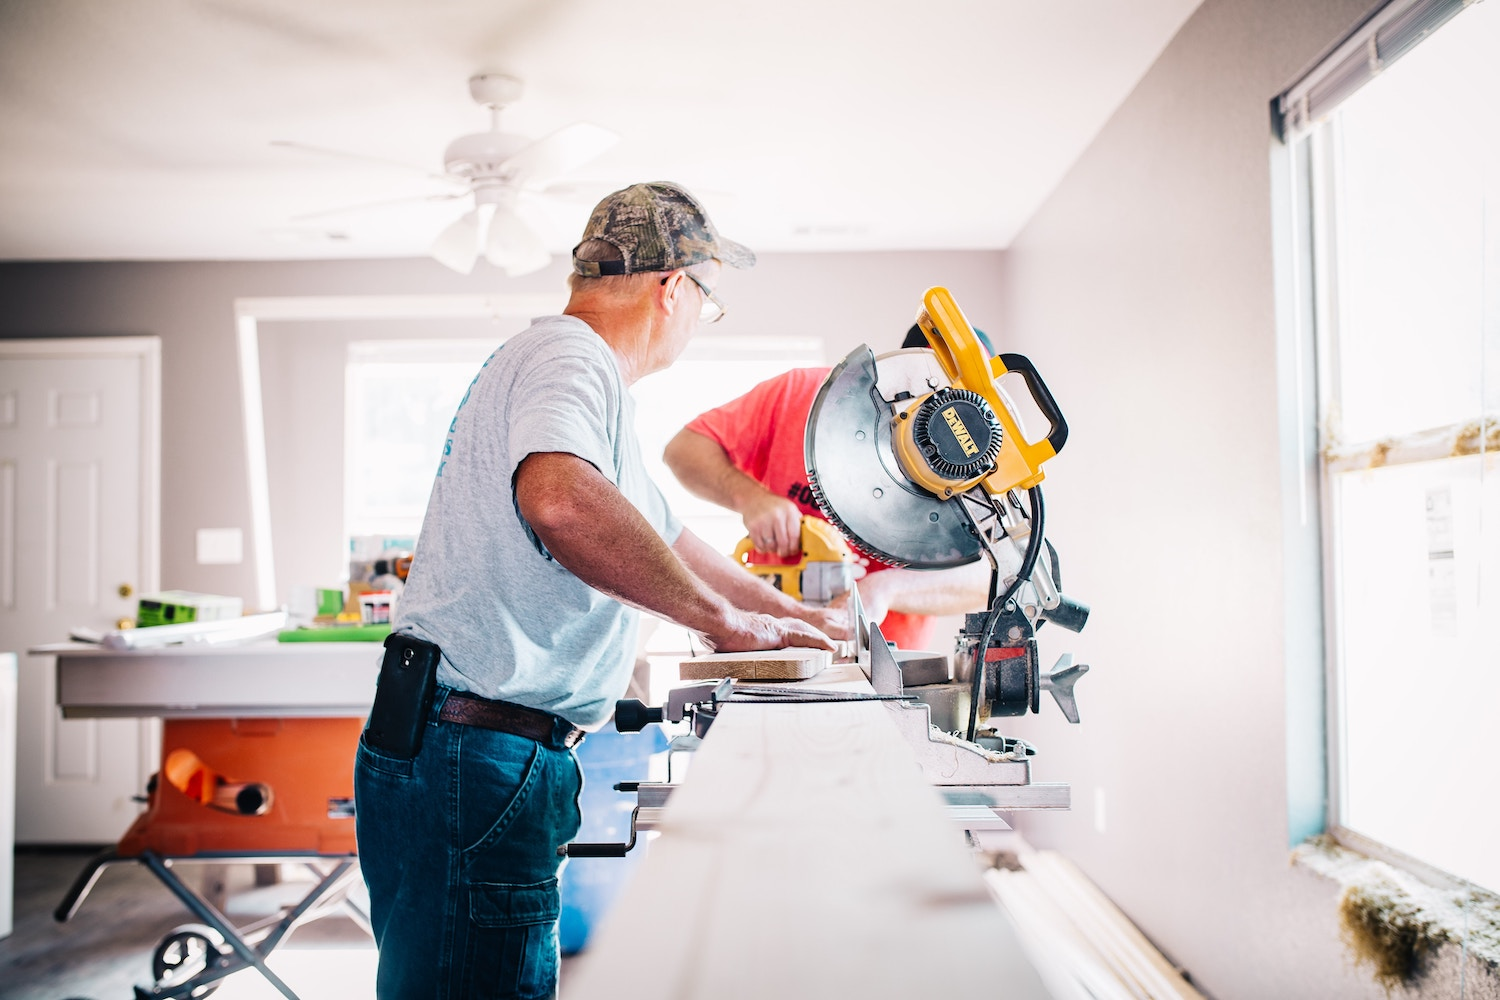 15 Precious Tips To Help You Get Better At Home Renovations.